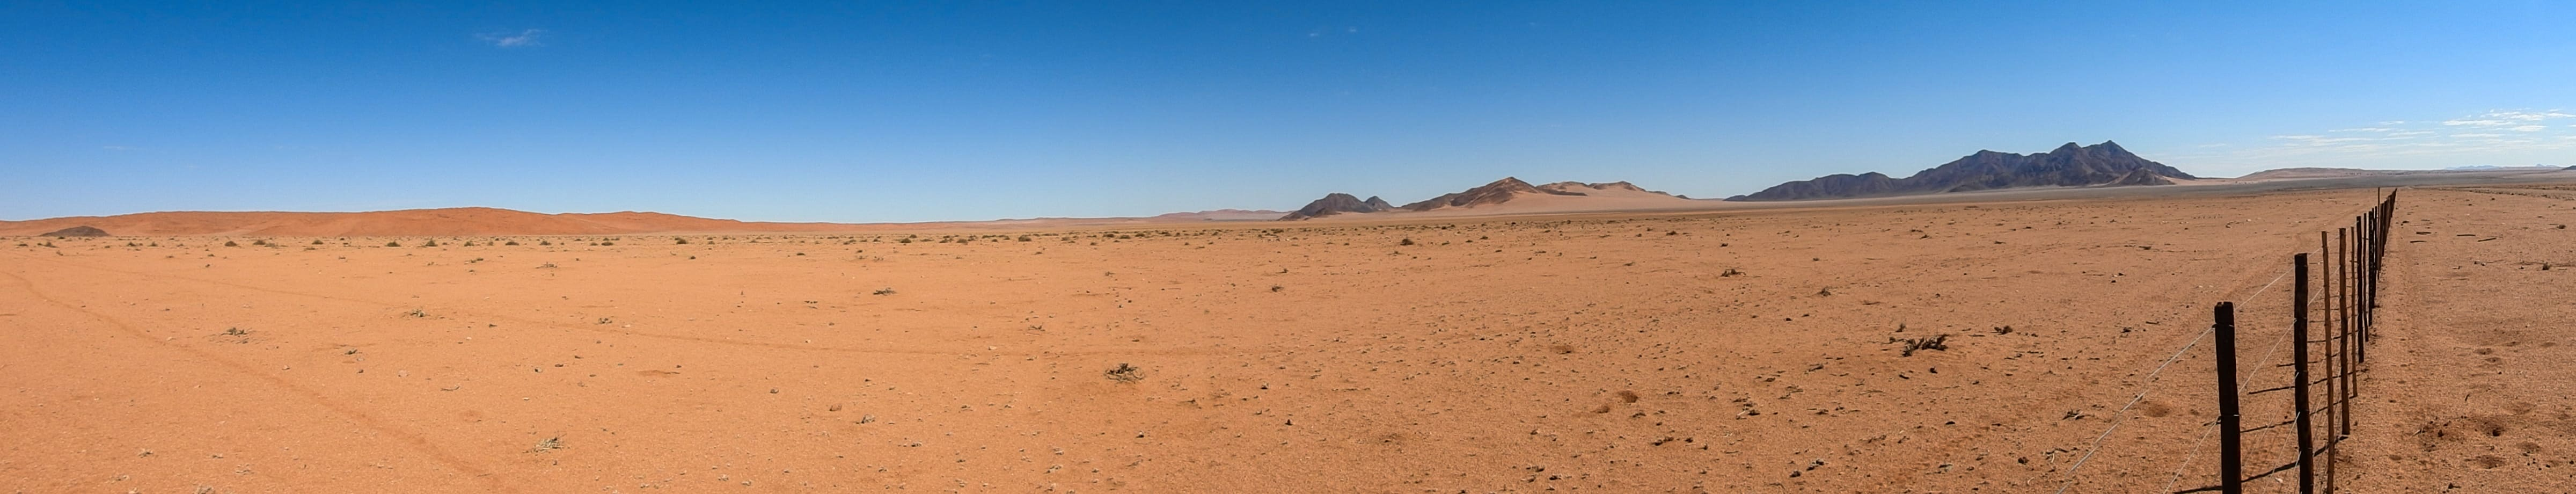 Namibia-D707-03